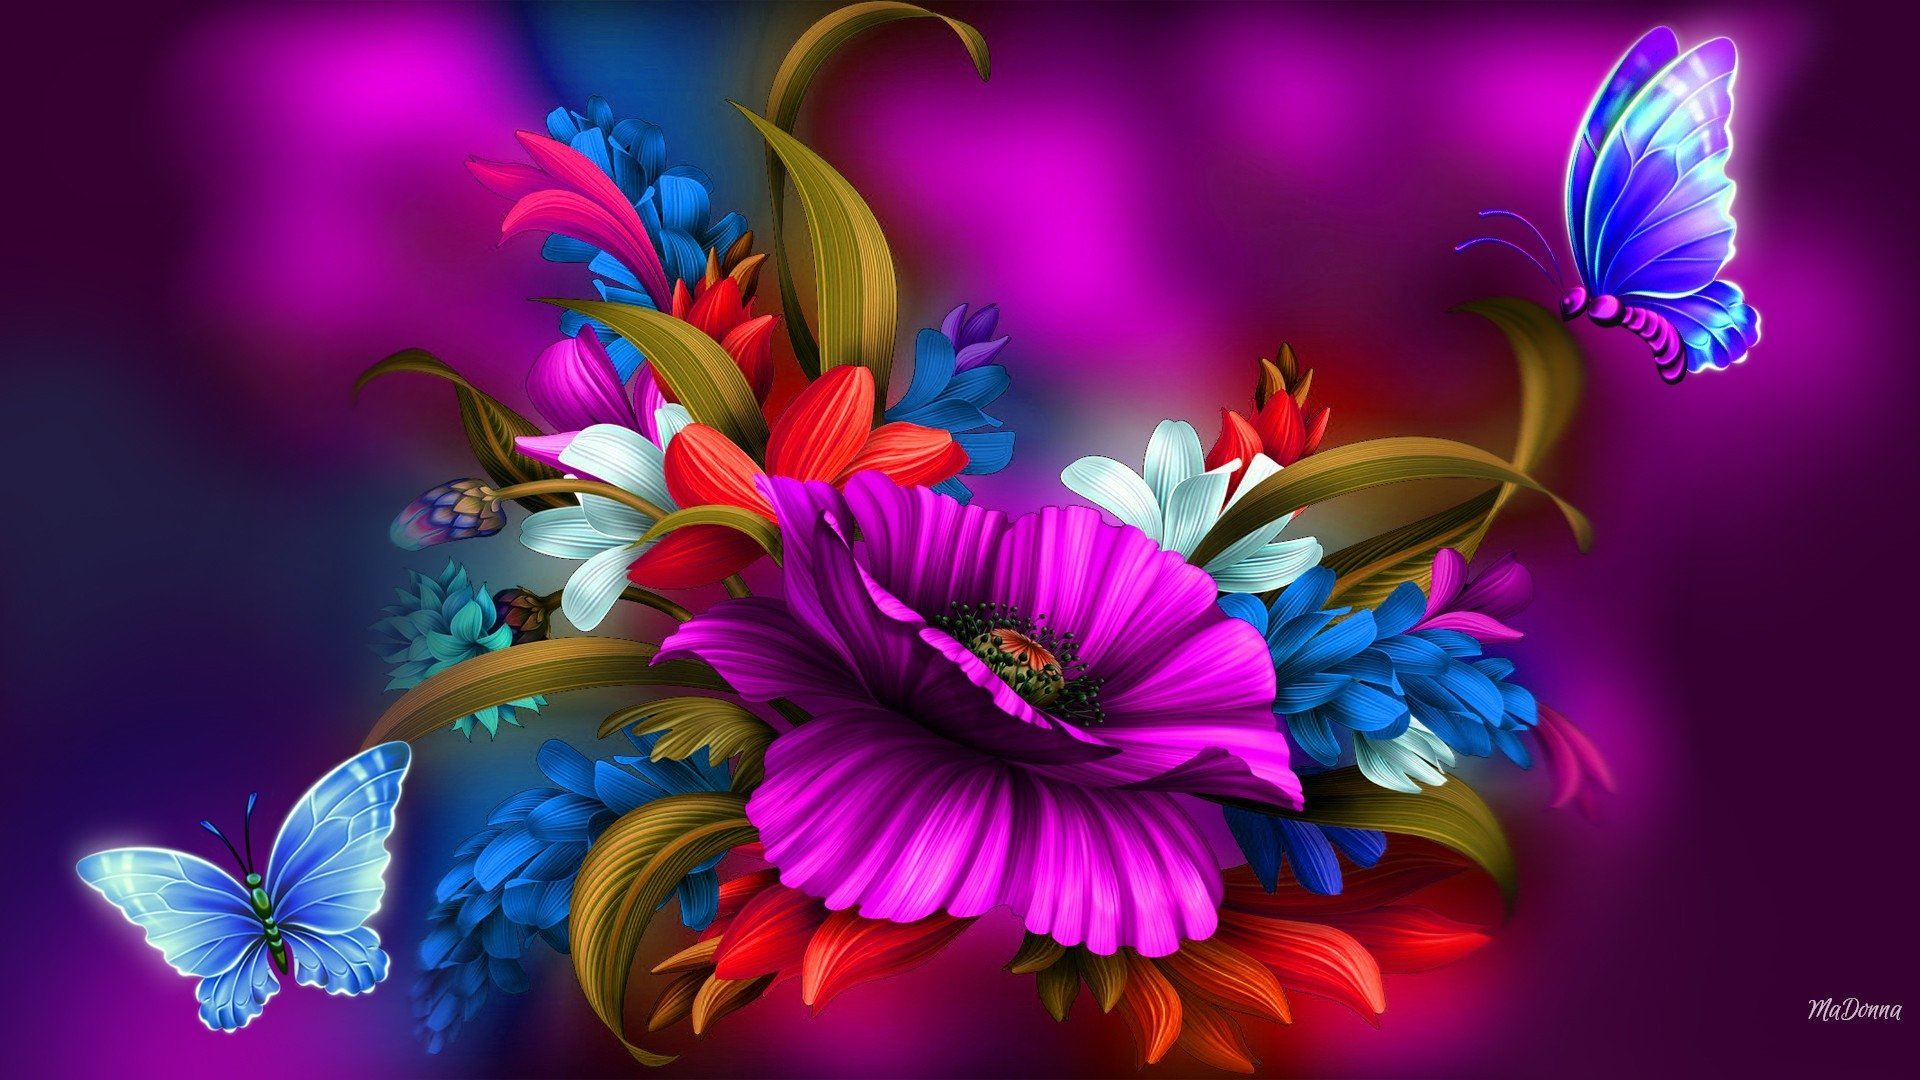 Free Colorful Flower Wallpaper Downloads: Colorful Flower And Butterfly Abstract HD Wallpaper